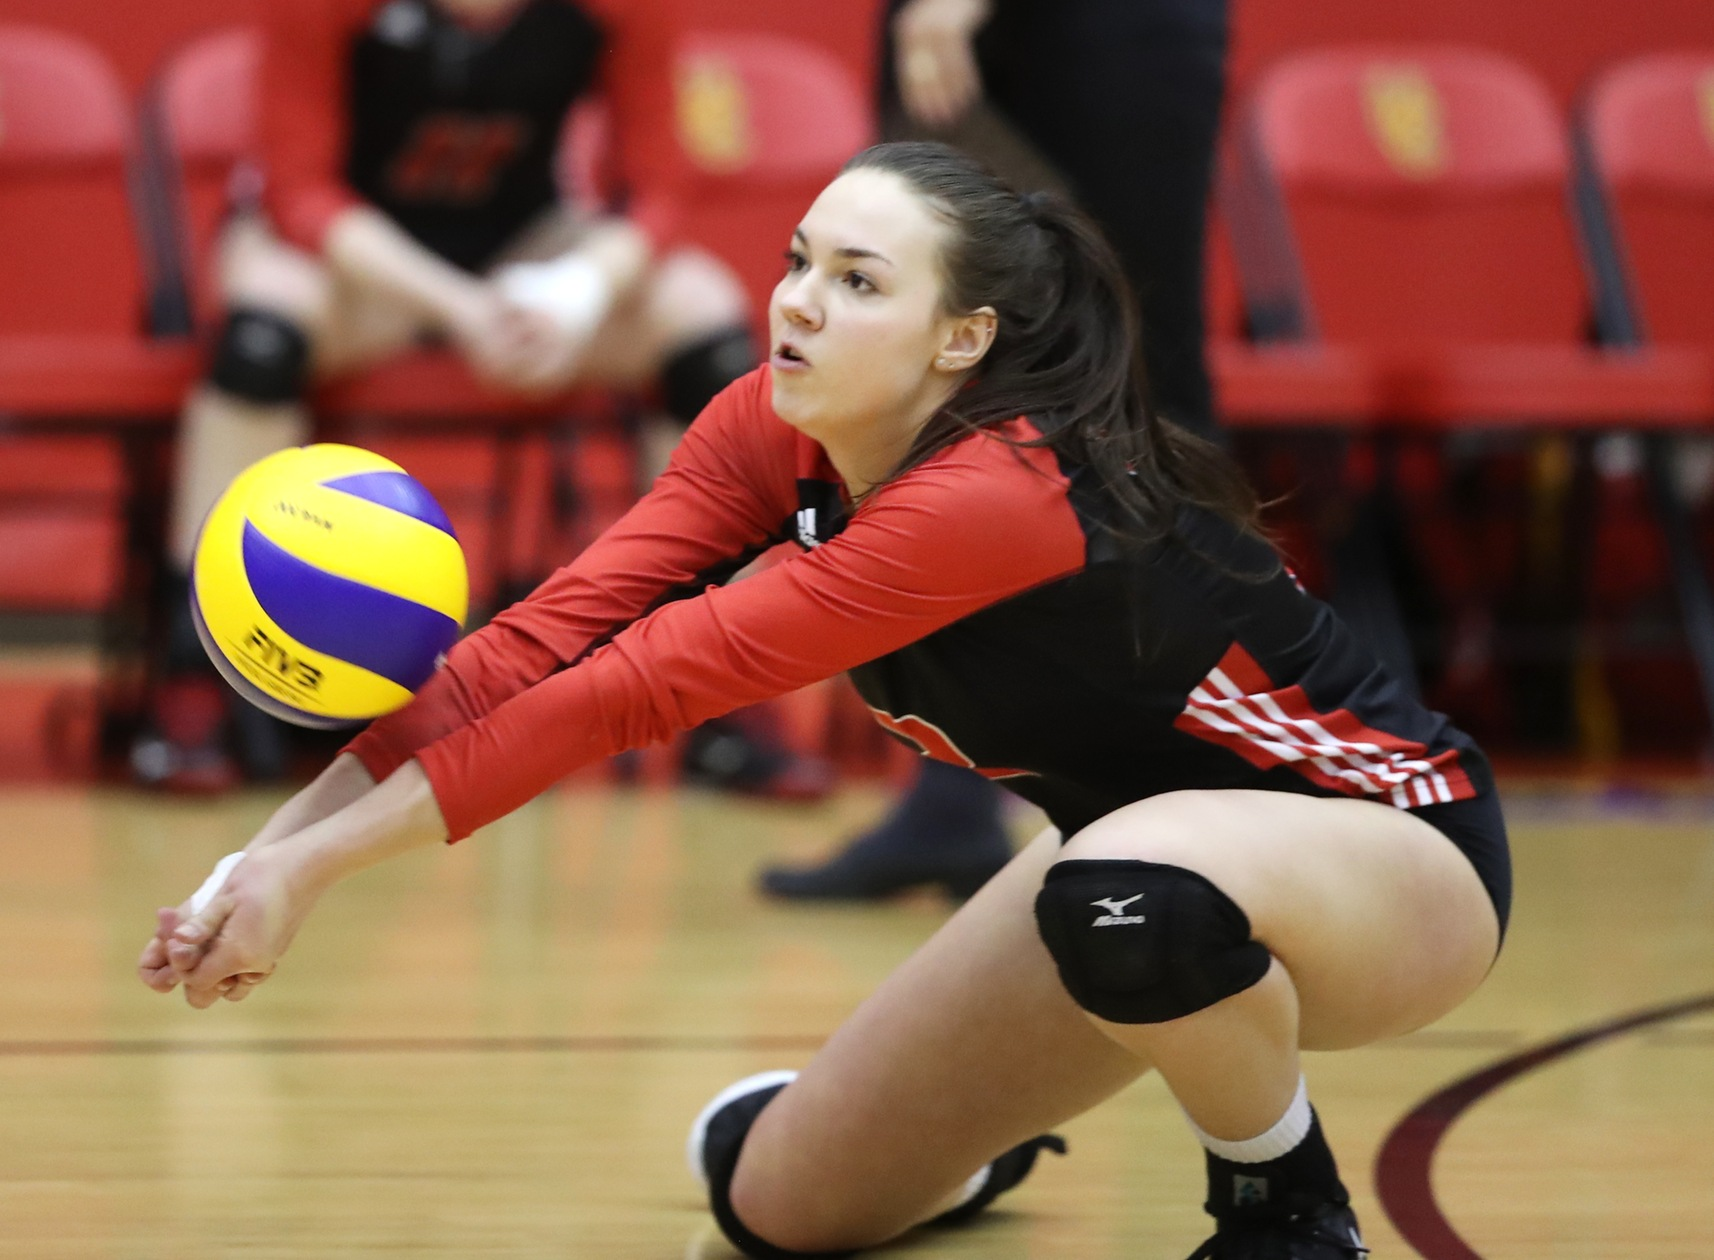 Kalena Schulz passes up a serve during the Winnipeg Wesmen's game with the Calgary Dinos at Calgary, Friday, Jan. 11, 2019. Schulz had a season-high .500 efficiency attacking in the match. (David Moll/Calgary Dinos)